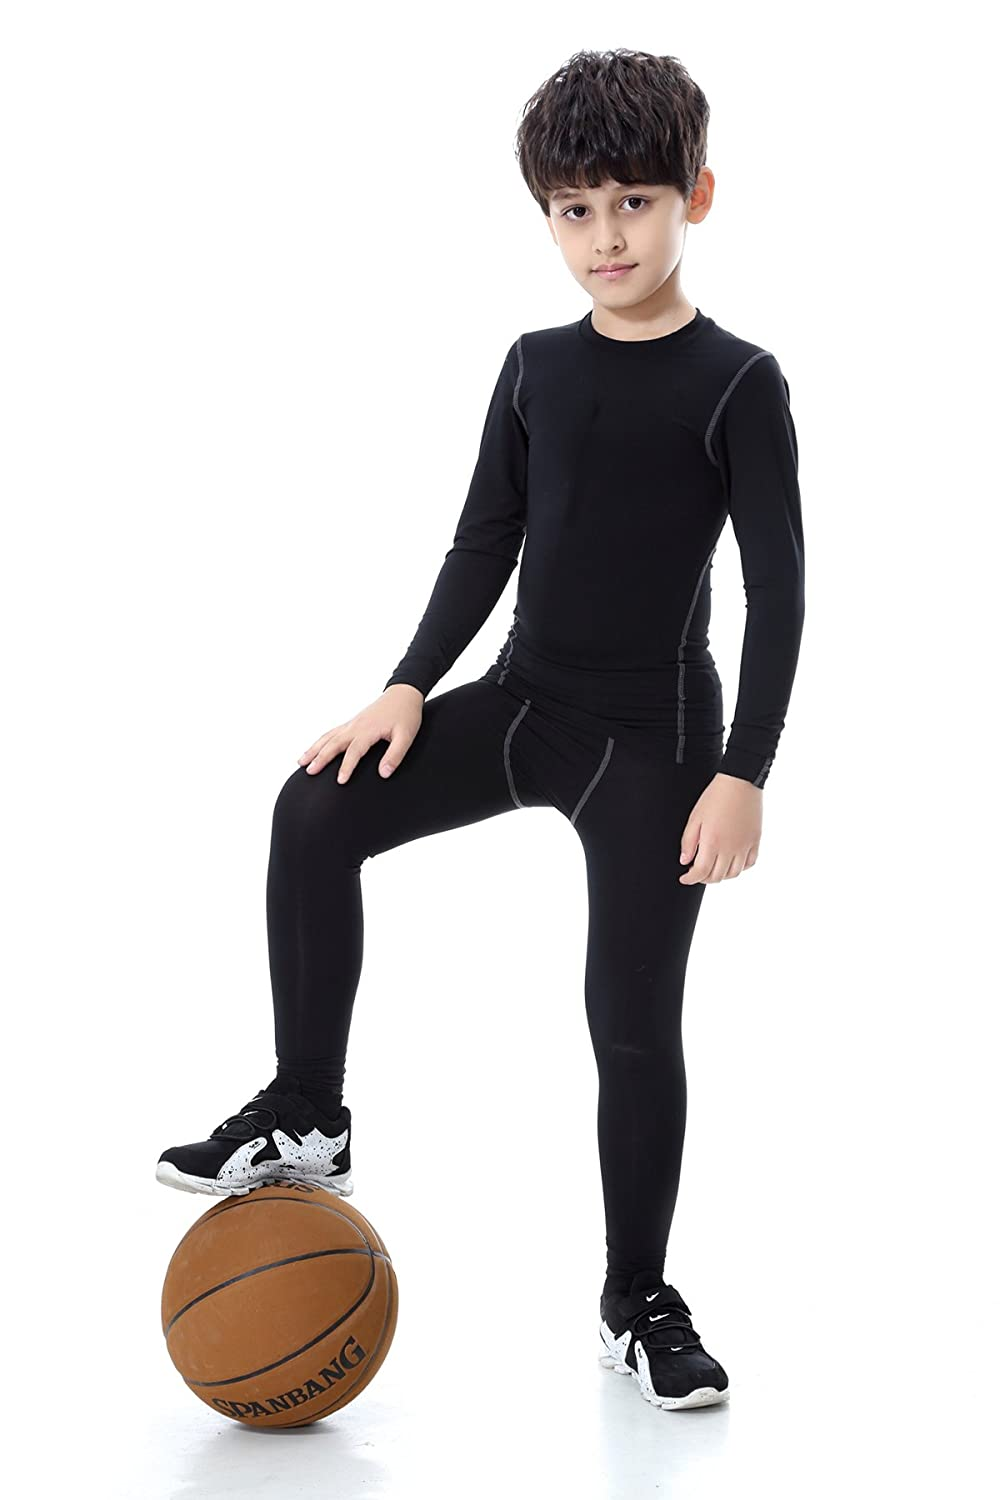 TOURME Kids Athletic Long Sleeve Compression Shirts Pant 2 Pcs Set for Boy Girl